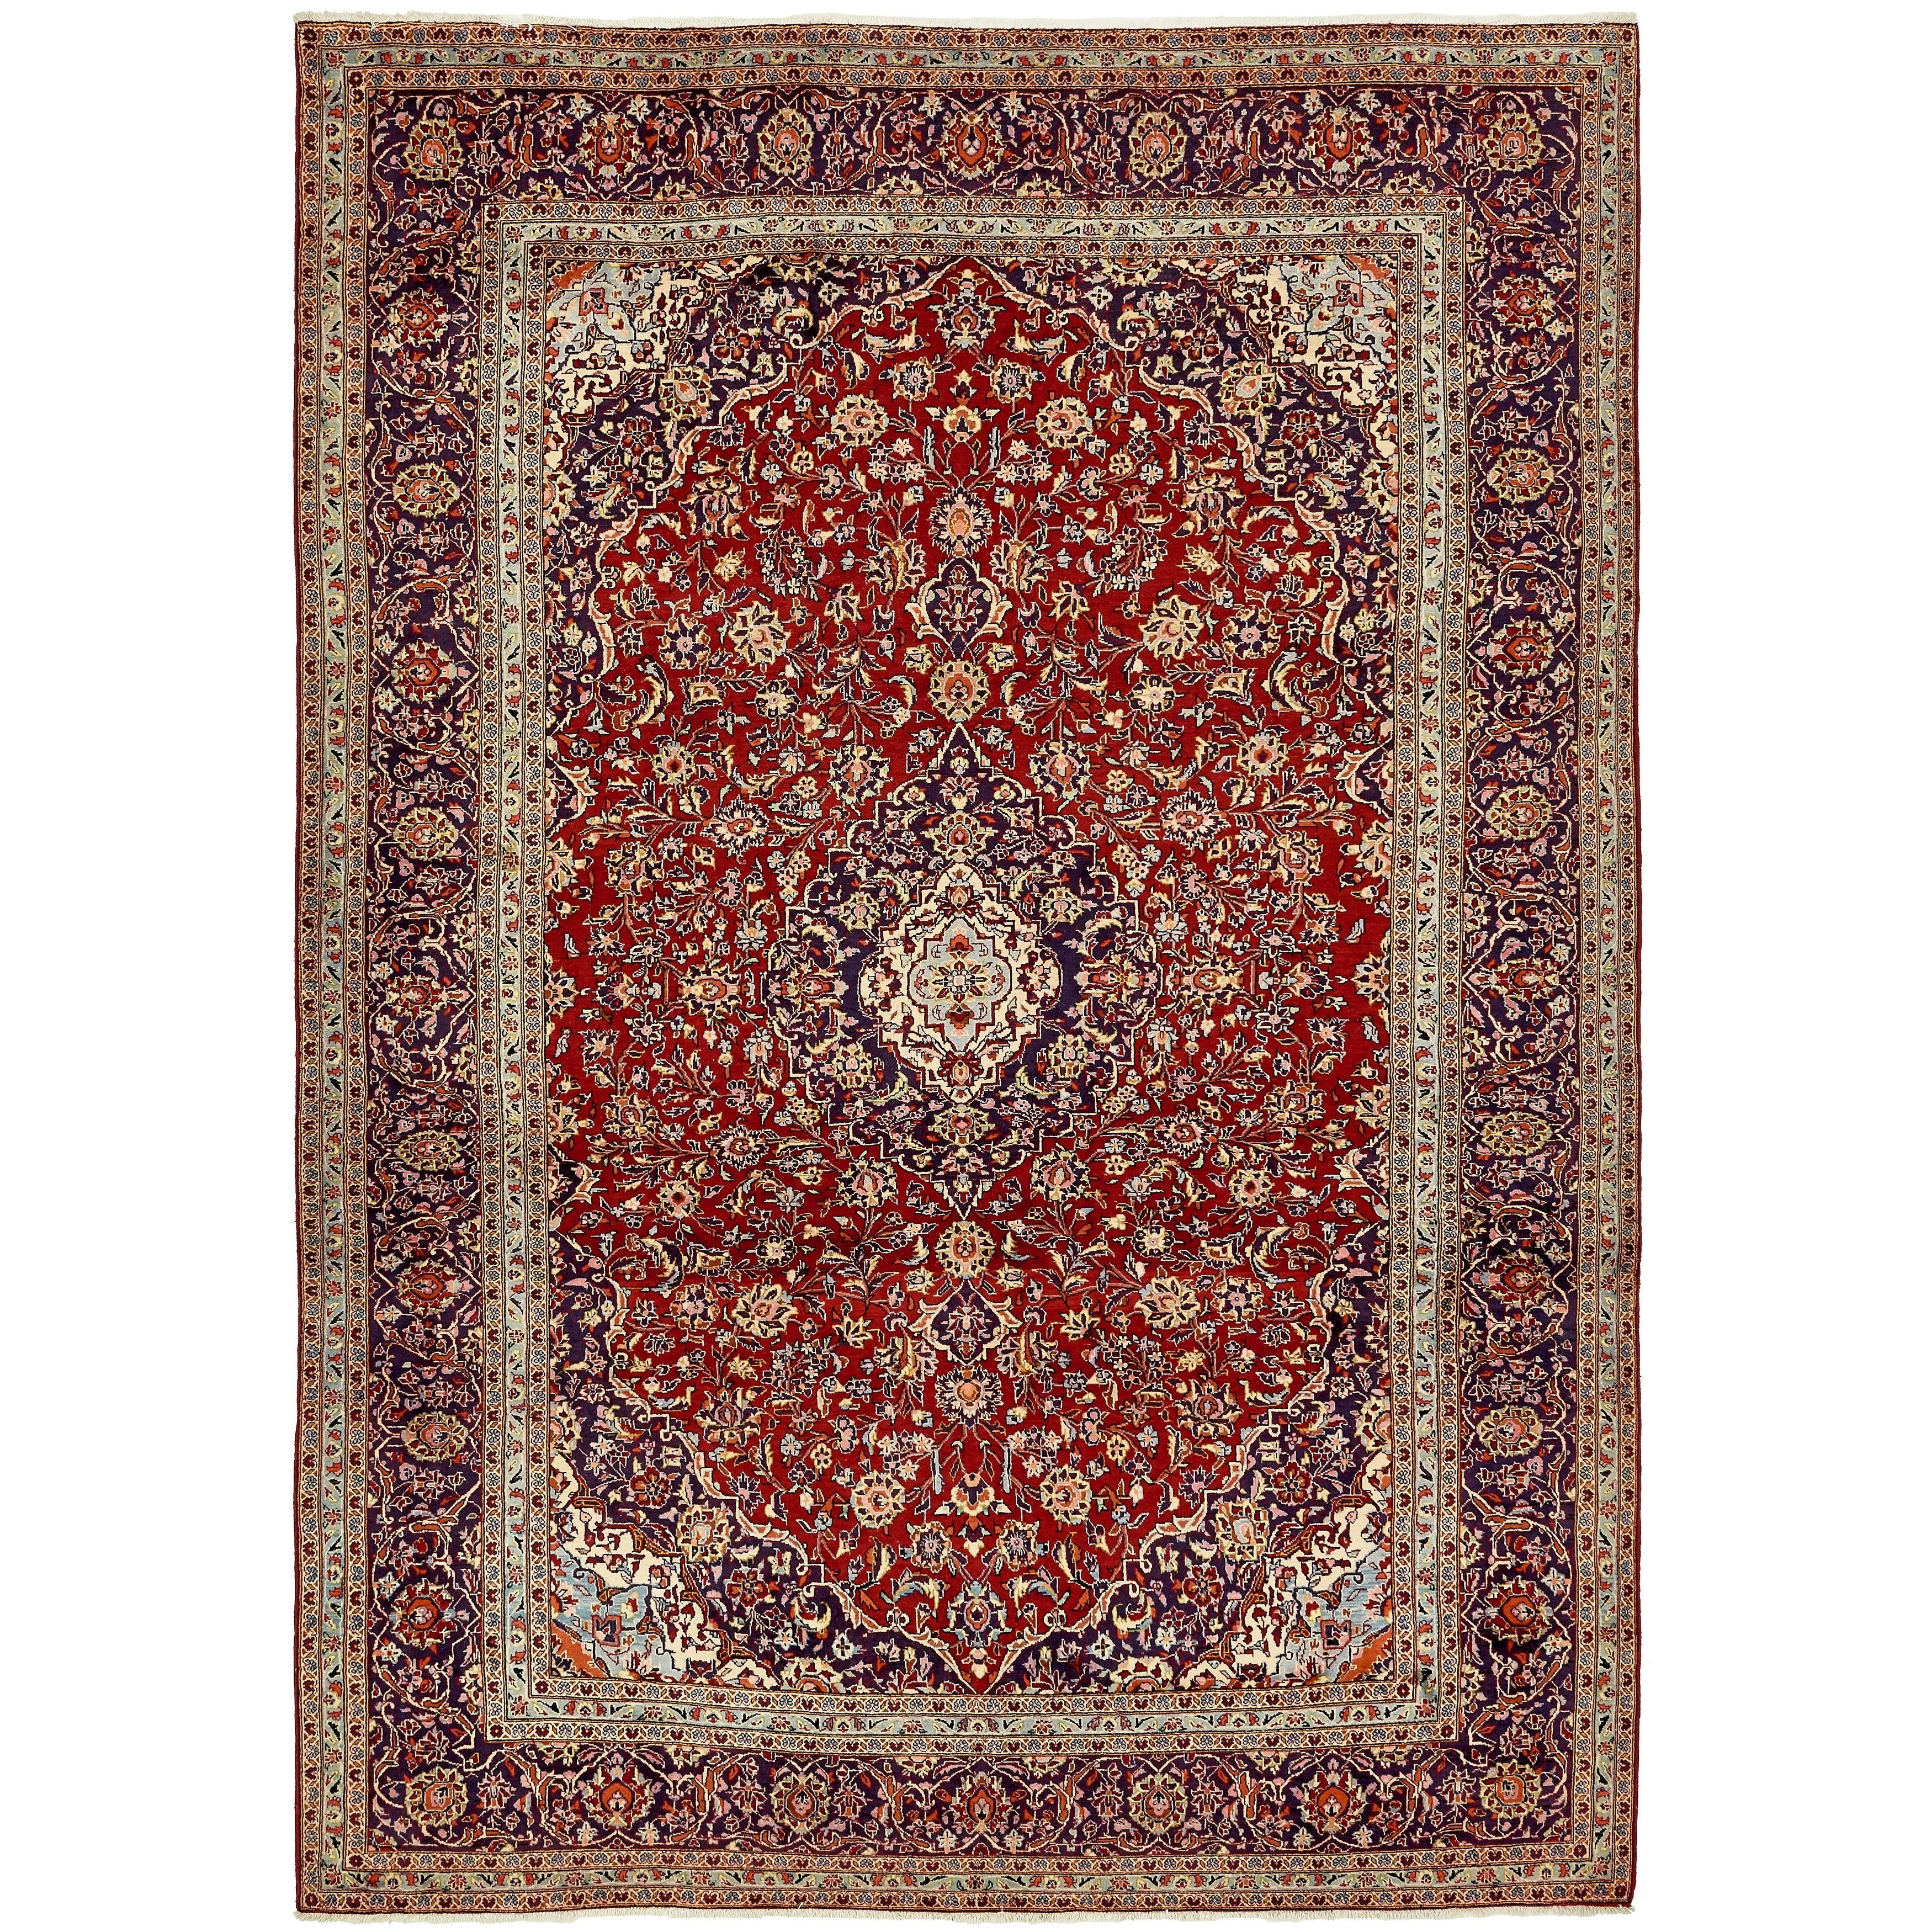 Hand Knotted Kashan Wool Area Rug - 9' 9 x 13' 8 (Red - 9' 9 x 13' 8)